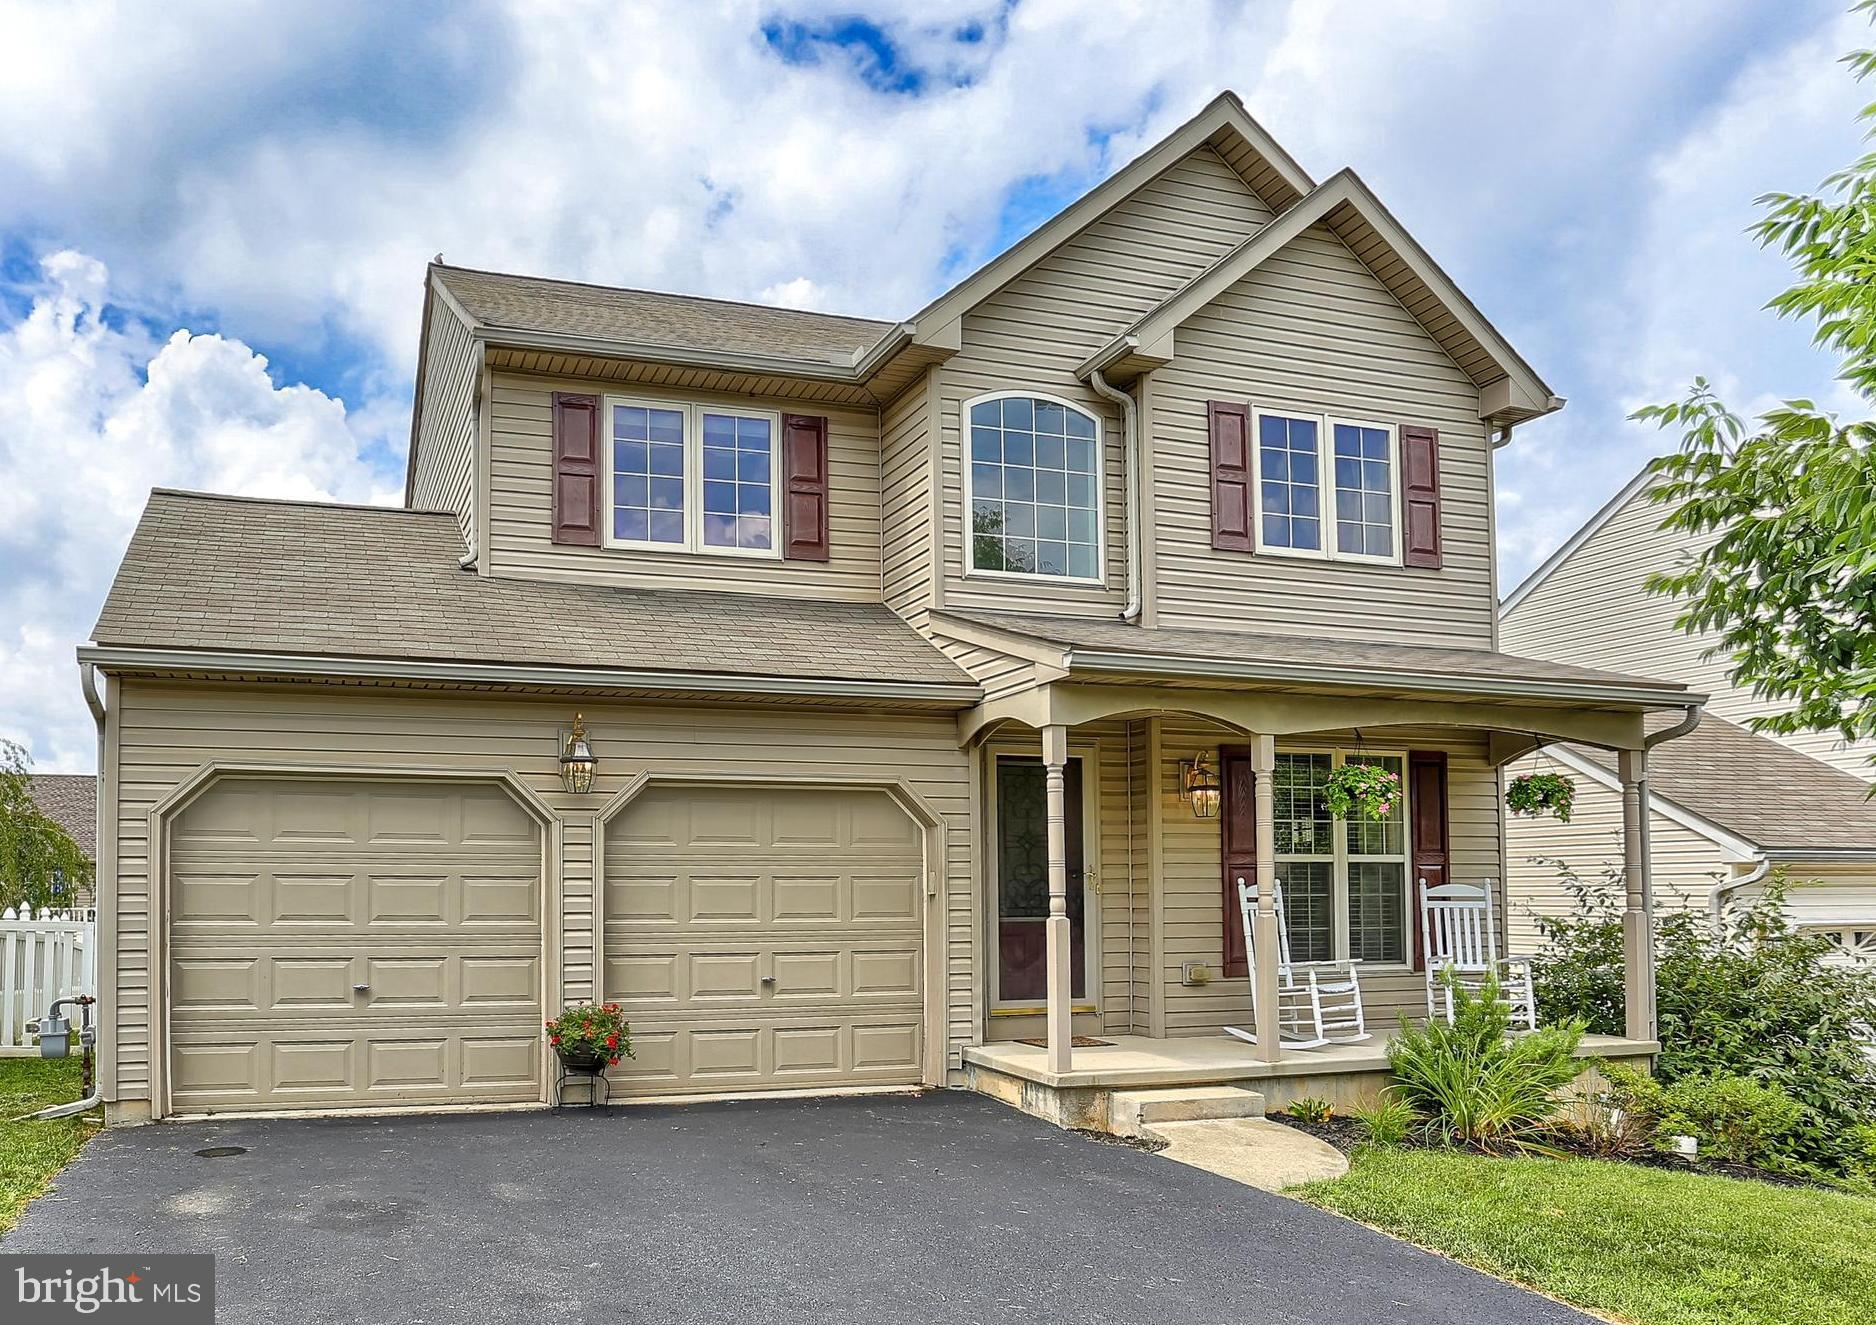 820 THOMAS ARMOR DRIVE, WINDSOR, PA 17366